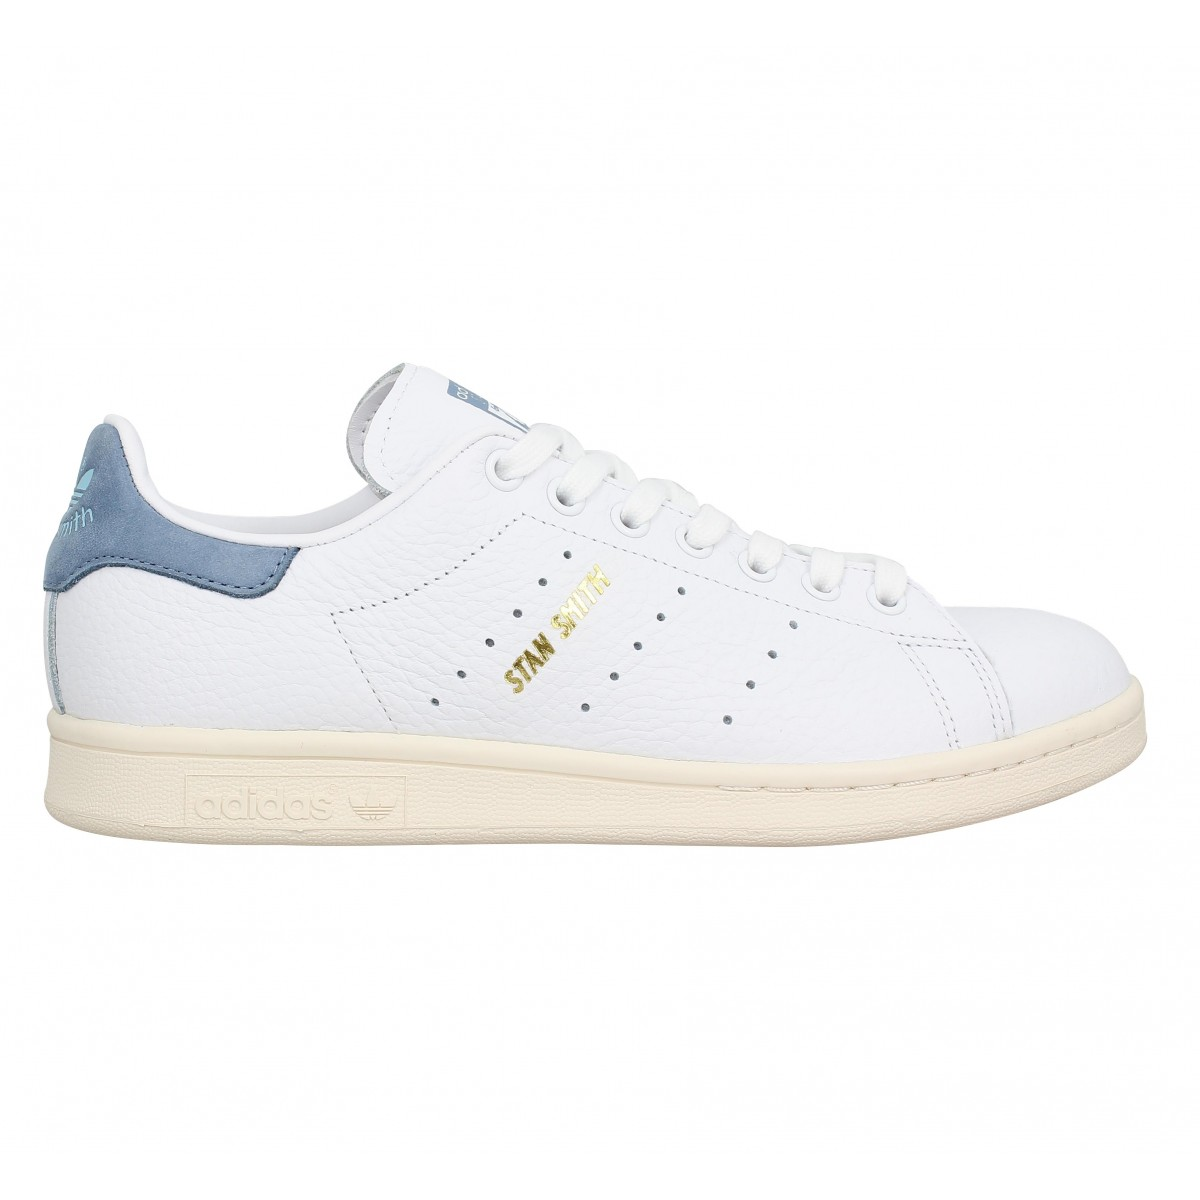 adidas stan smith 2 blanc bleu. Black Bedroom Furniture Sets. Home Design Ideas